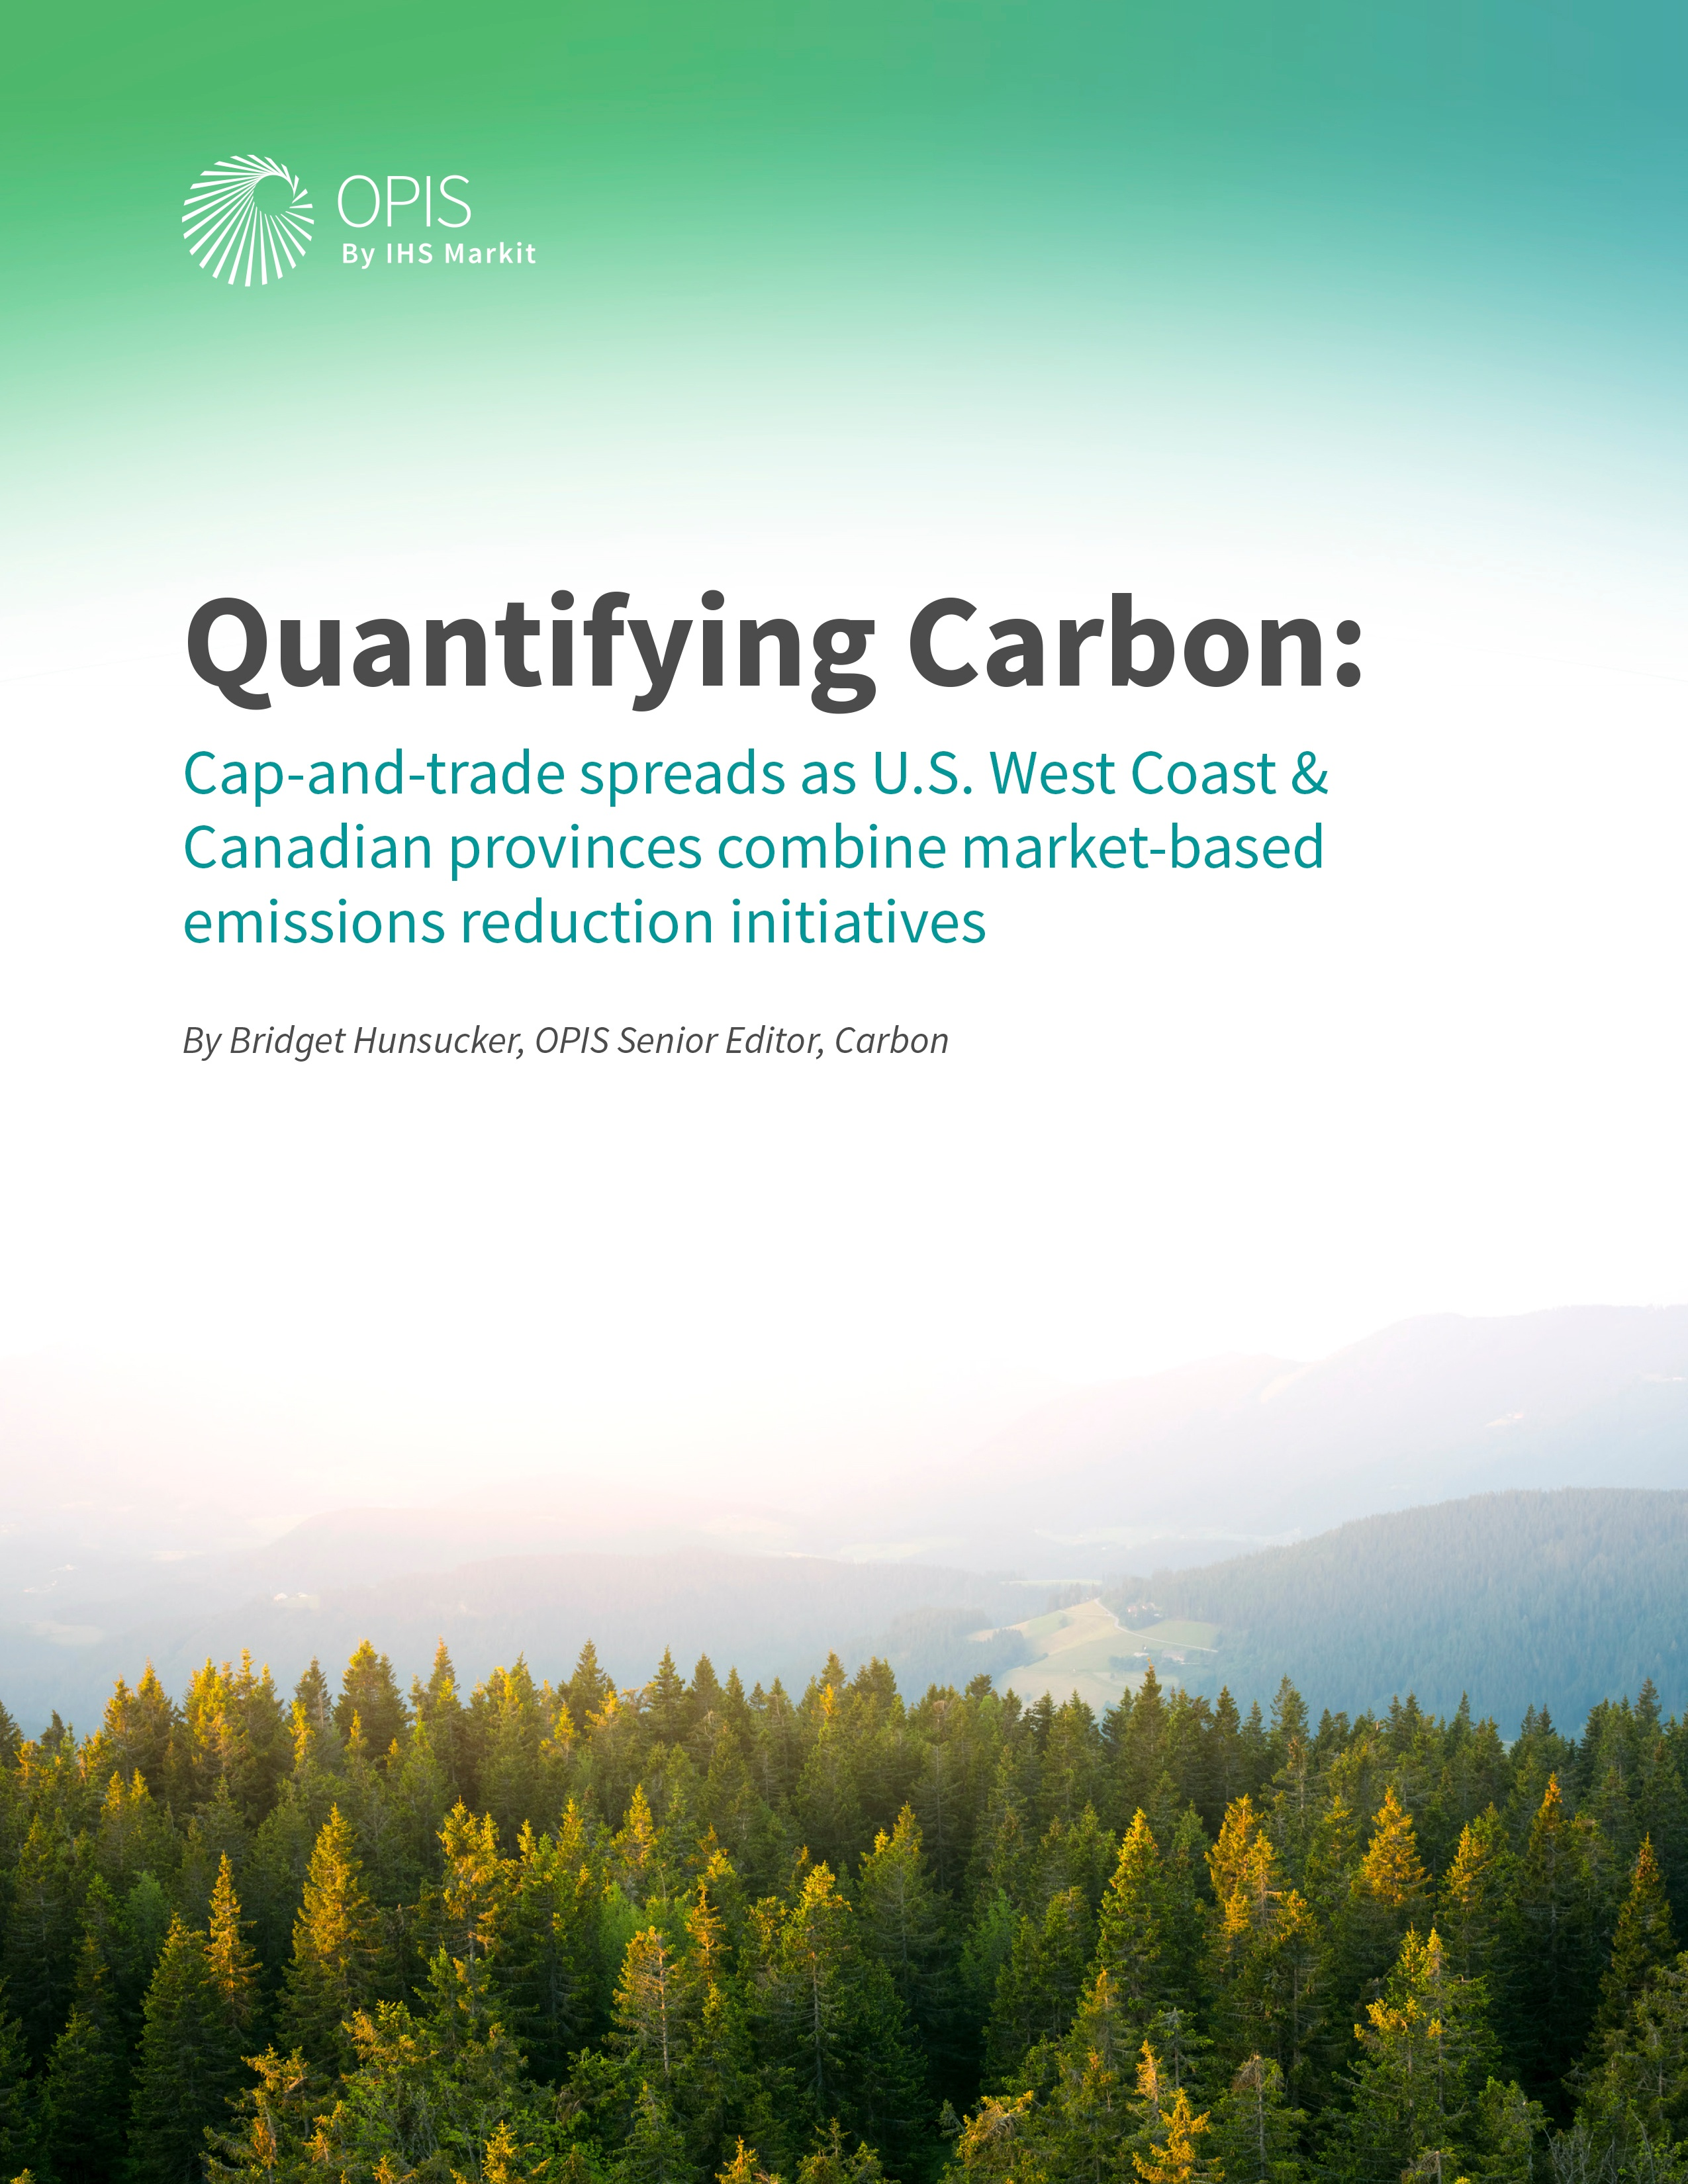 Quantifying Carbon: Cap-and-trade spreads as U.S. West Coast & Canadian provinces combine market-based emissions reduction initiatives